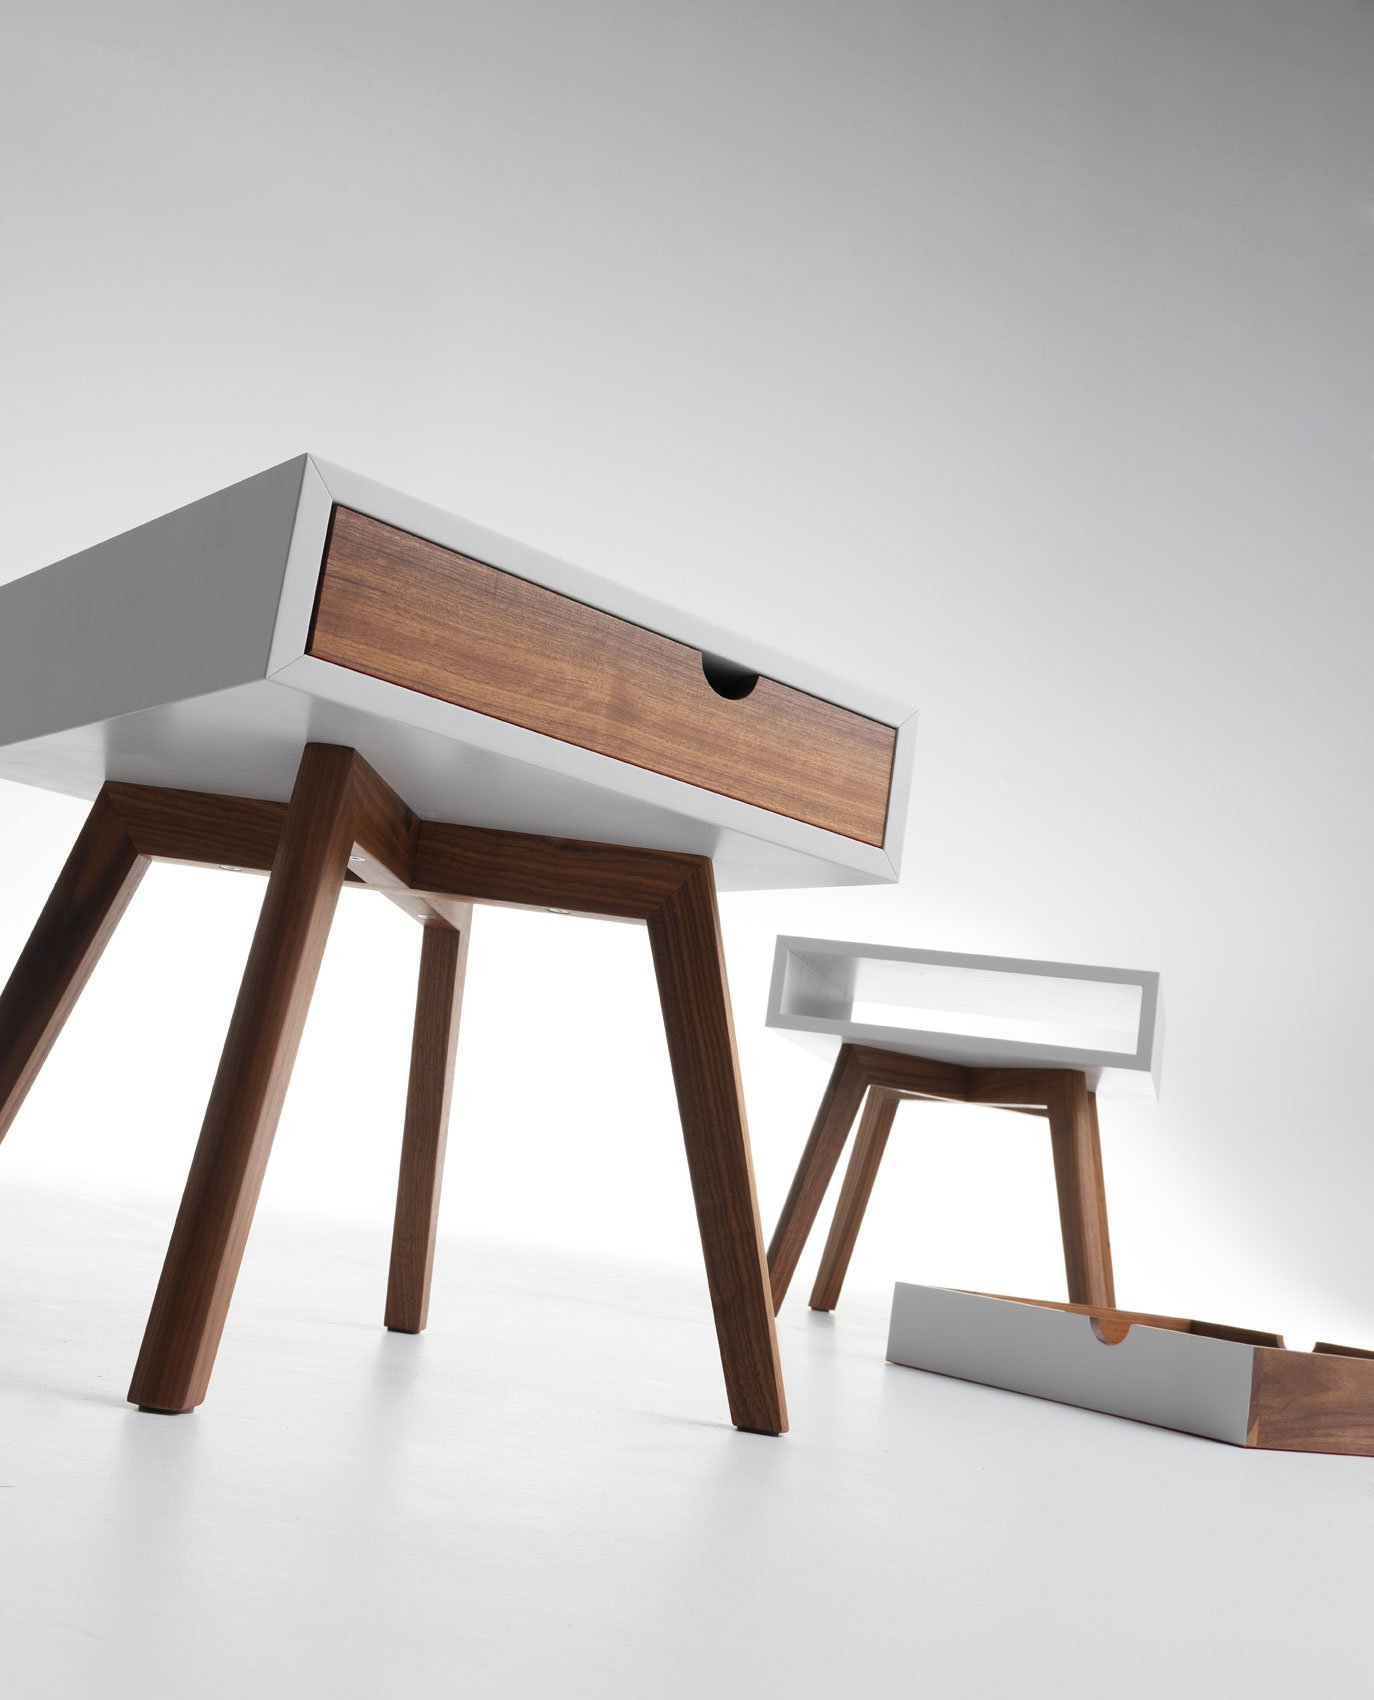 Io e Te end table from Horm, designed by Esa Vesmanen